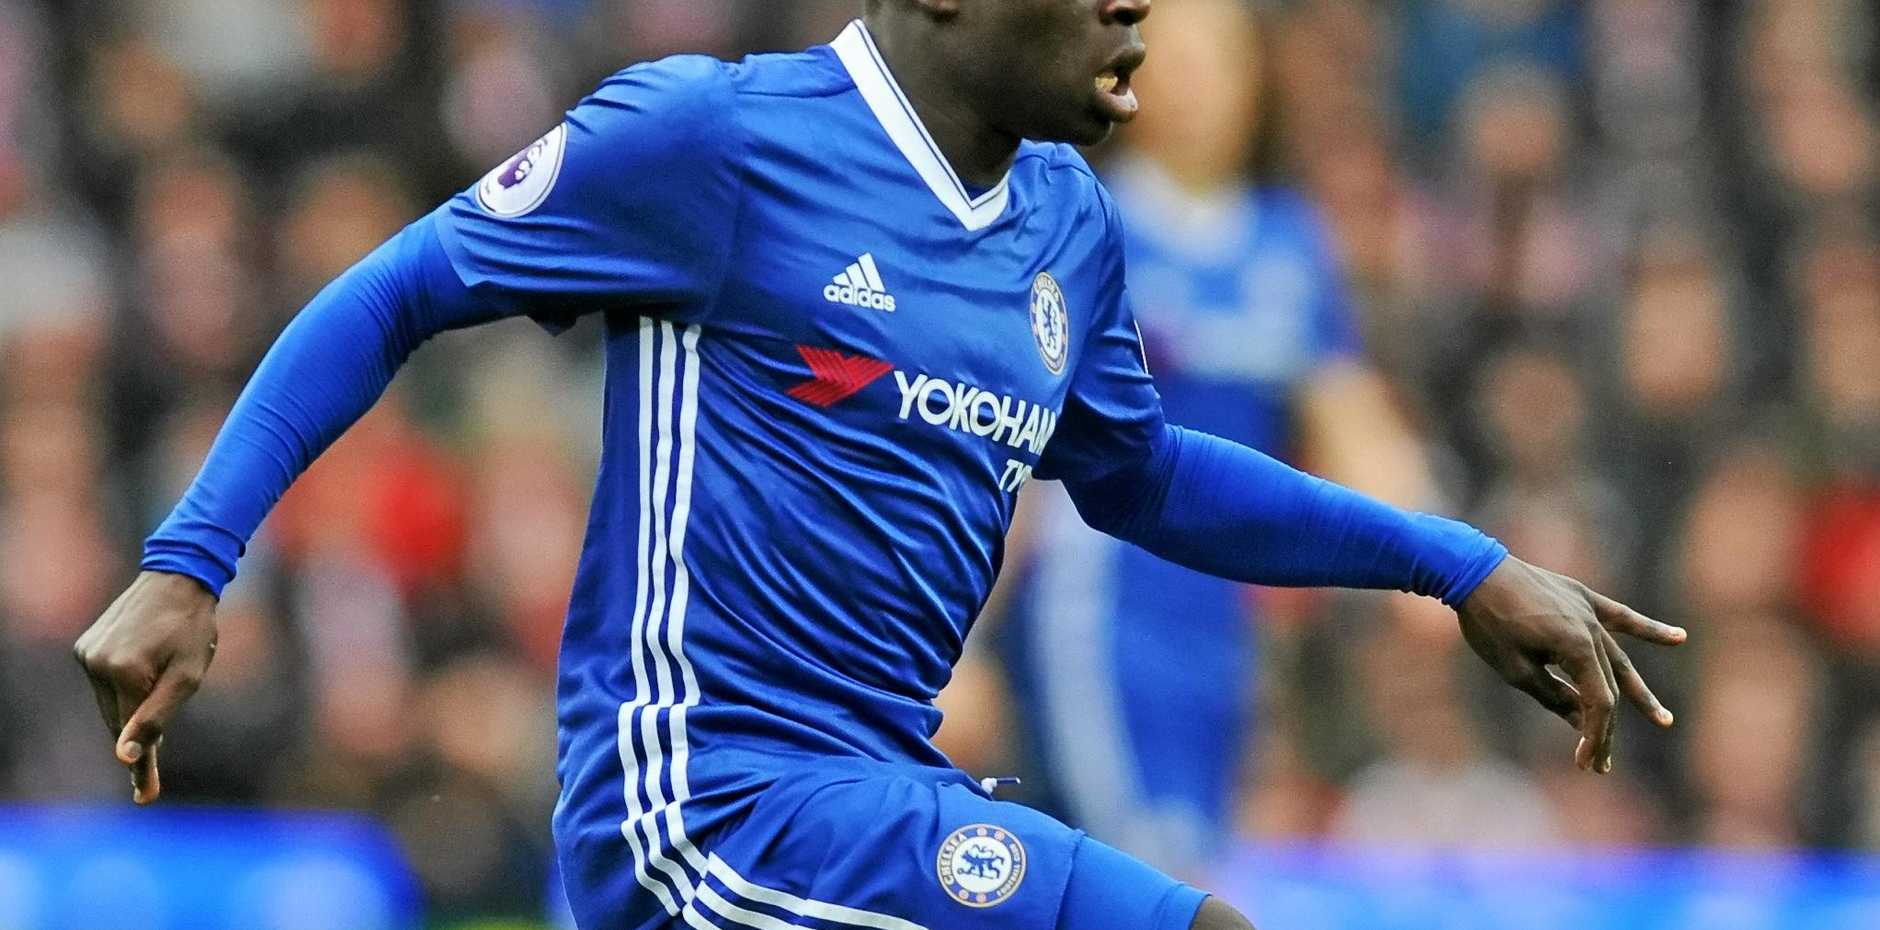 Chelsea's N'Golo Kante is the favourite to win the PFA player of the year award.